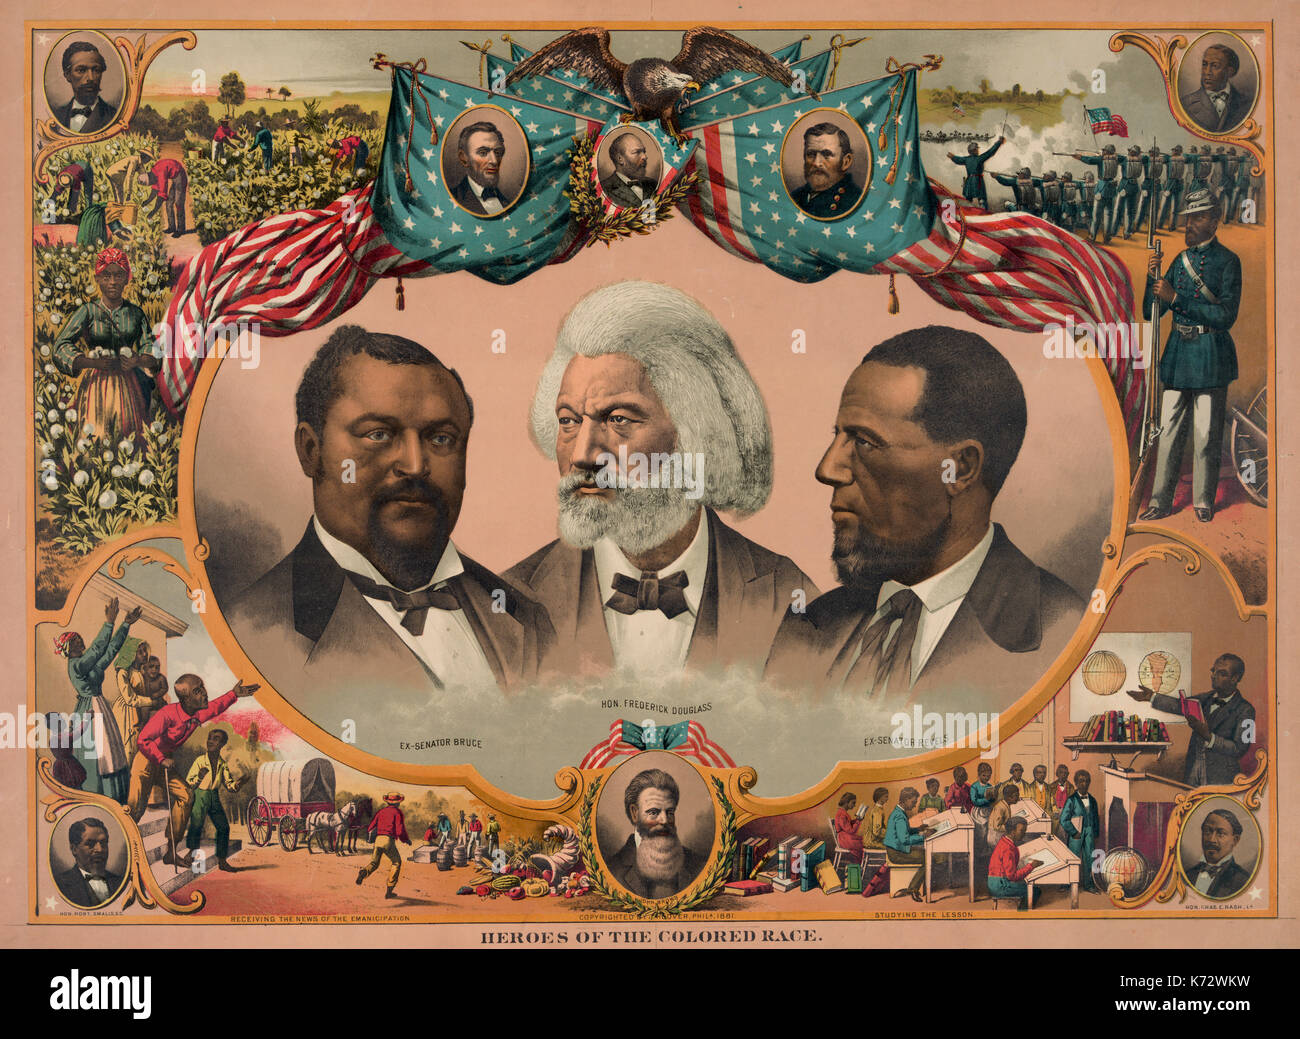 Heroes of the colored race  - Print shows head-and-shoulders portraits of Blanche Kelso Bruce, Frederick Douglass, and Hiram Rhoades Revels surrounded by scenes of African American life and portraits of Jno. R. Lynch, Abraham Lincoln, James A. Garfield, Ulysses S. Grant, Joseph H. Rainey, Charles E. Nash, John Brown, and Robert Smalls, circa 1881 - Stock Image